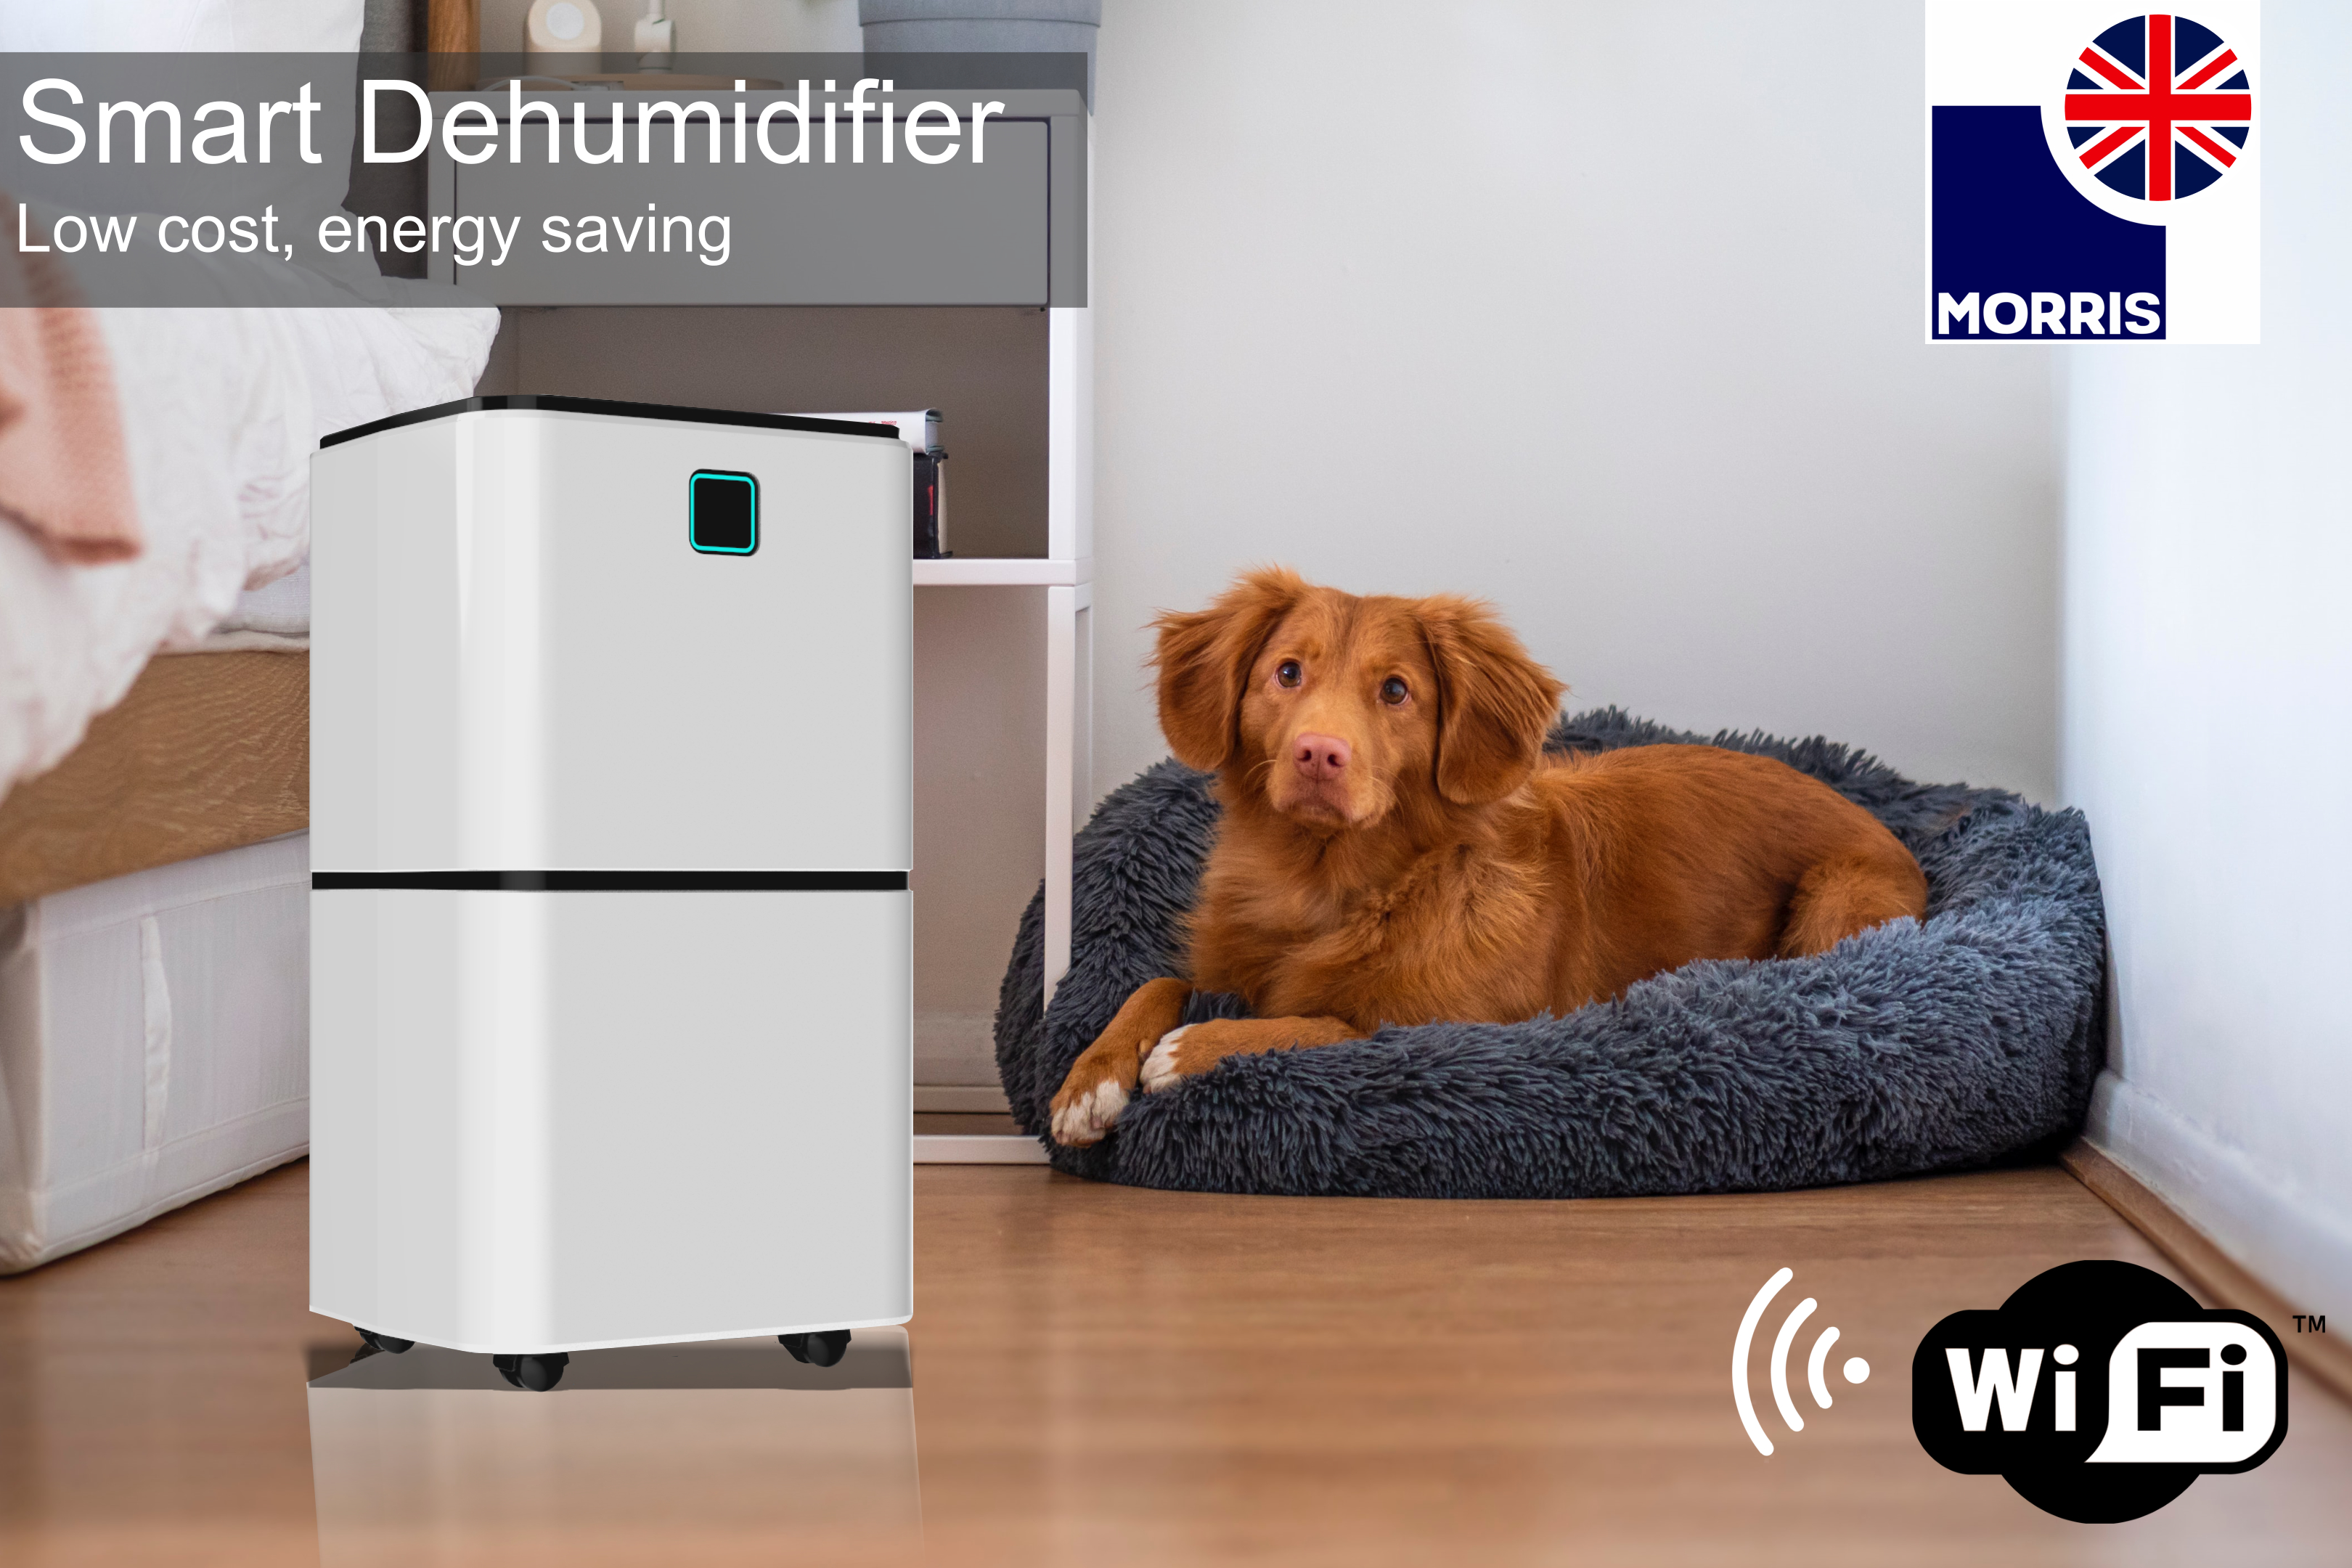 LED First Choice Launch Morris 12 Litre Smart Dehumidifier with Wi-Fi